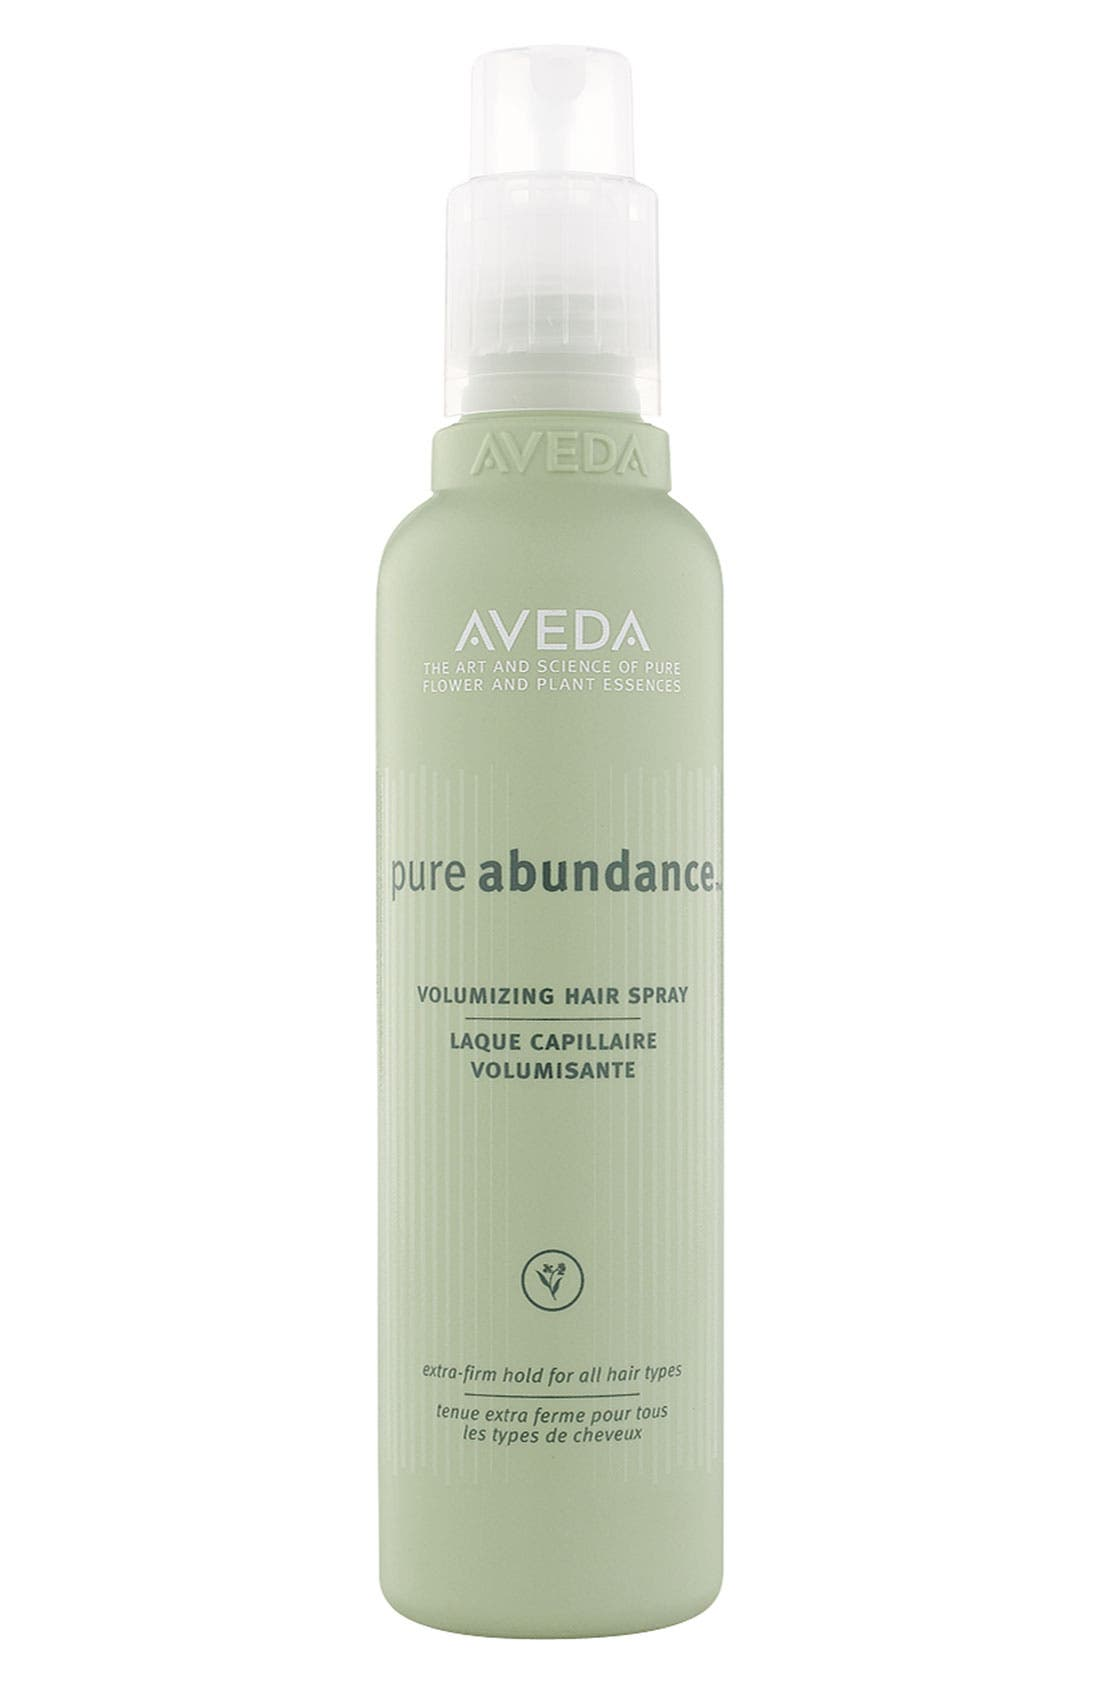 Aveda 'pure abundance™' Volumizing Hair Spray